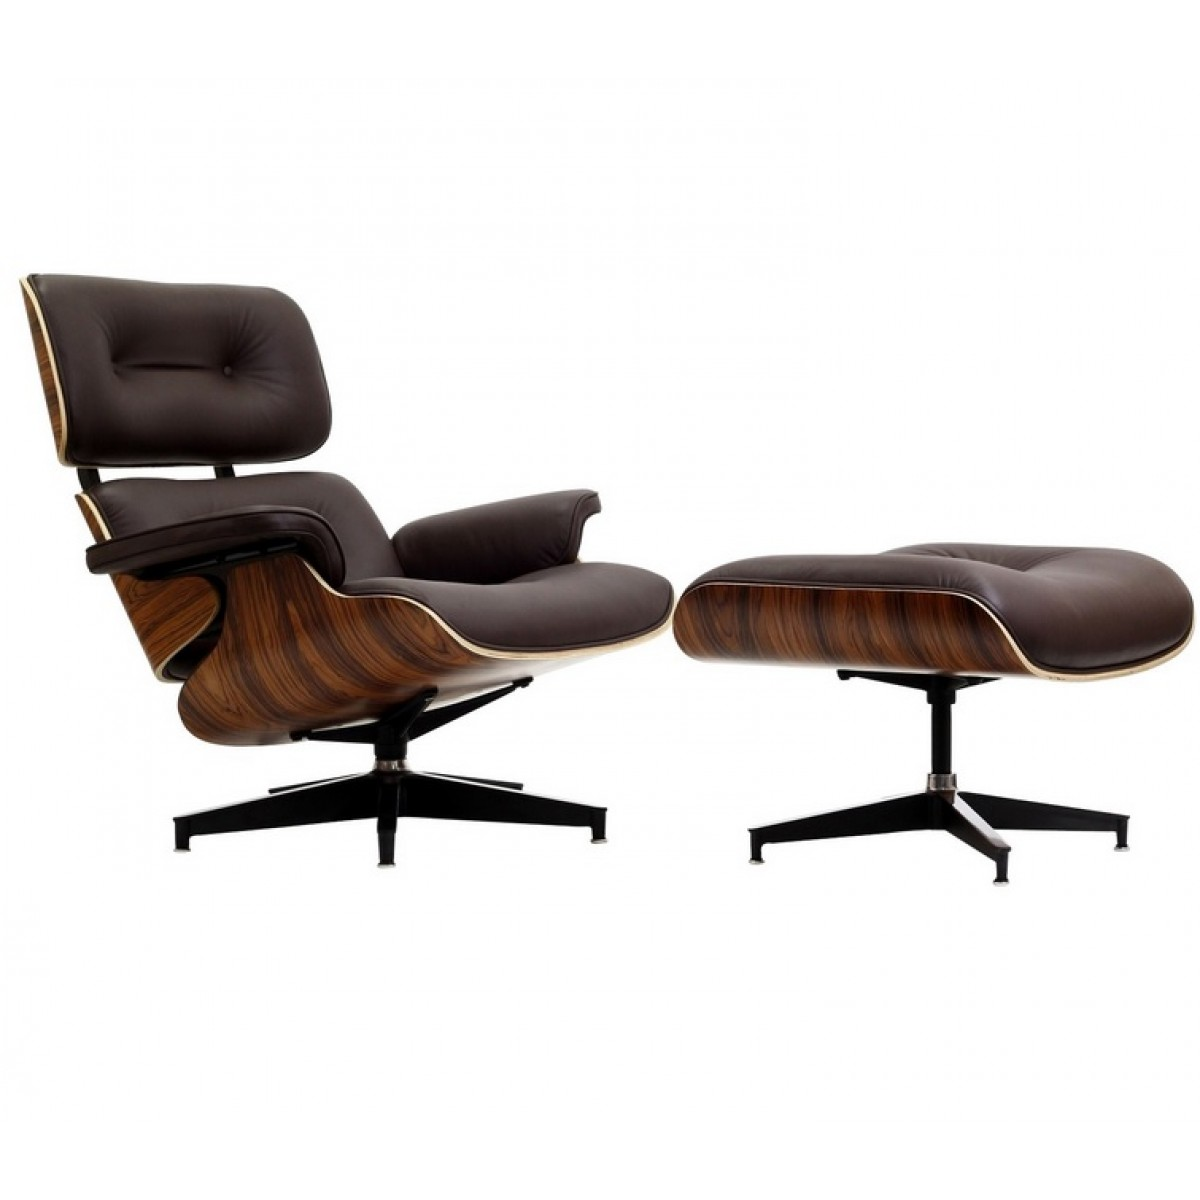 Eames style lounge chair and ottoman brown leather walnut for Eames chair replica deutschland